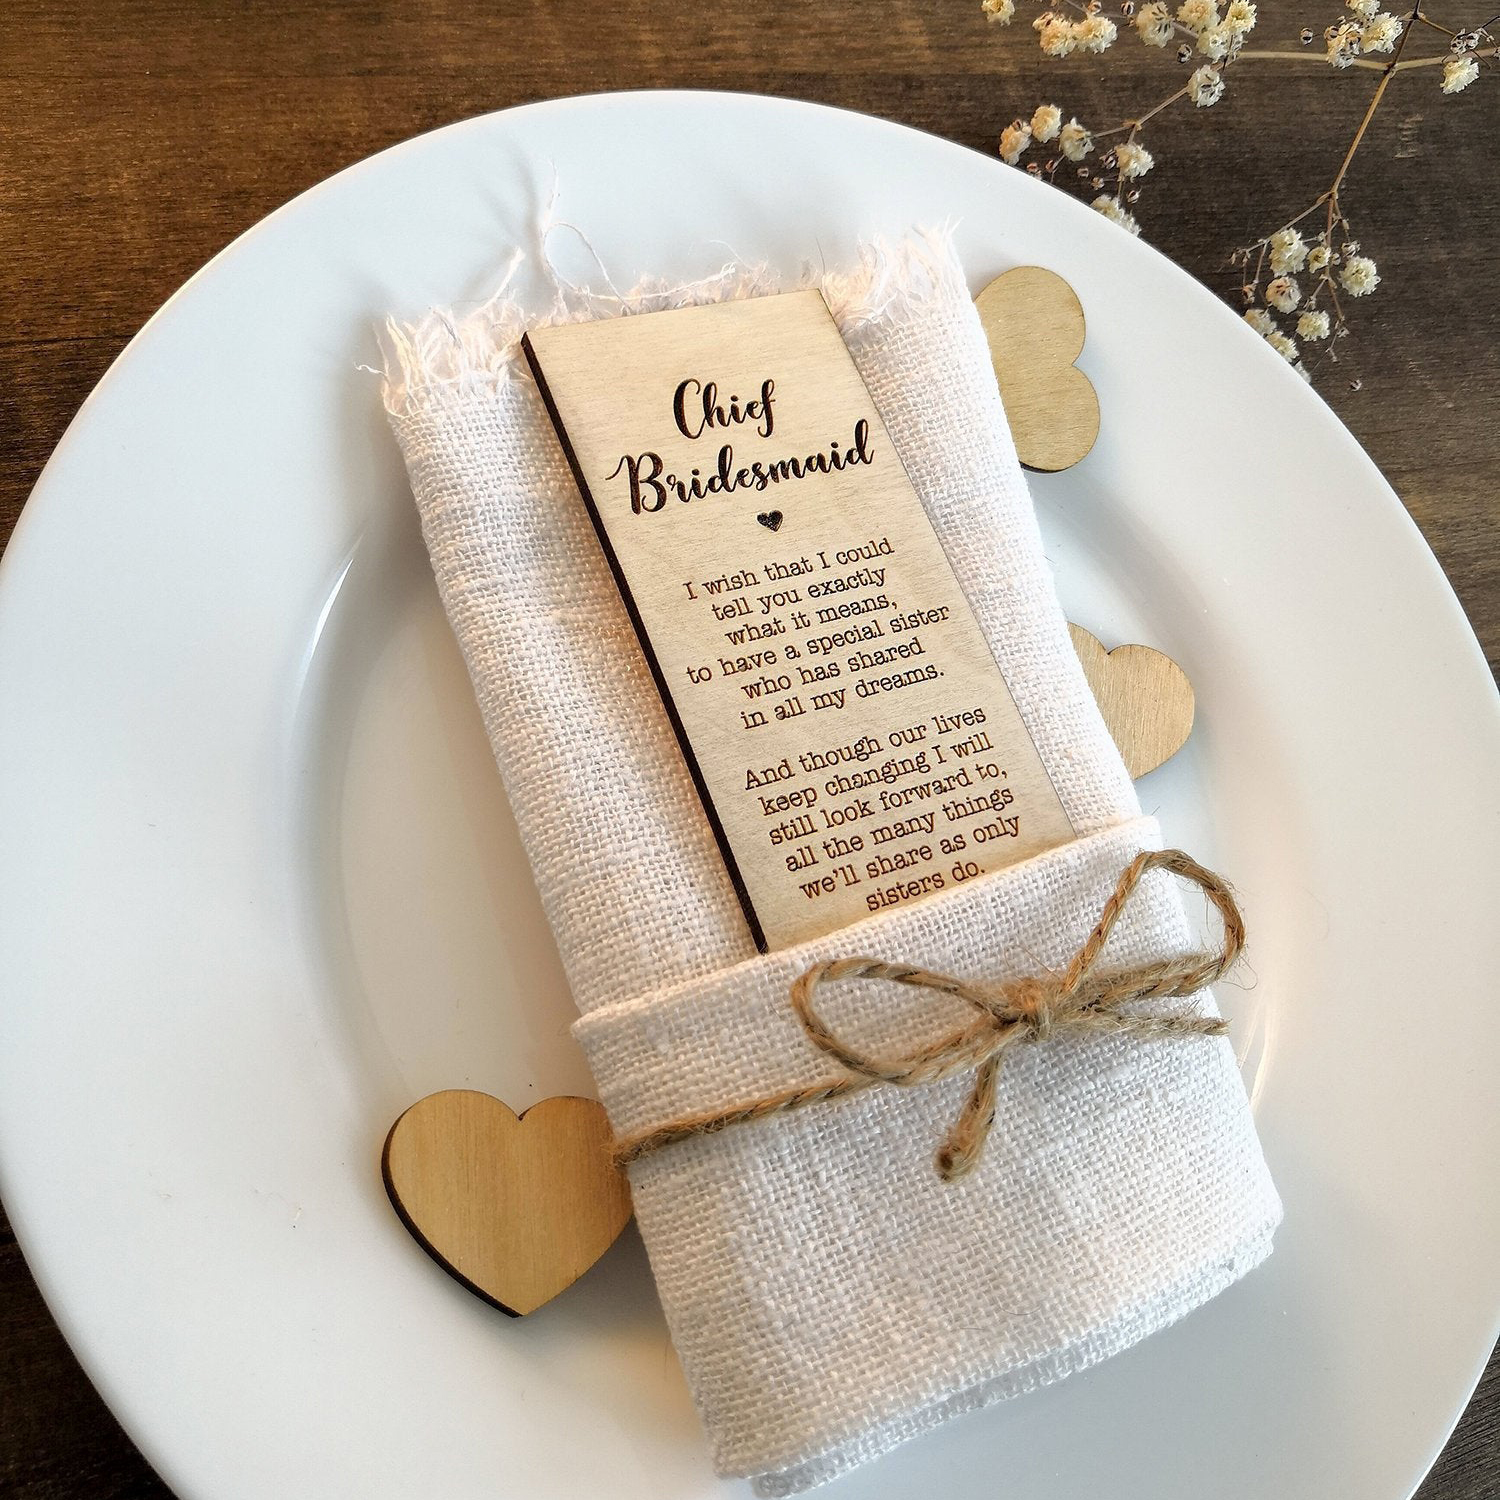 Wooden Guests Place Setting With Best Man Place Card Rustic Wedding Bridesmaid Place Card